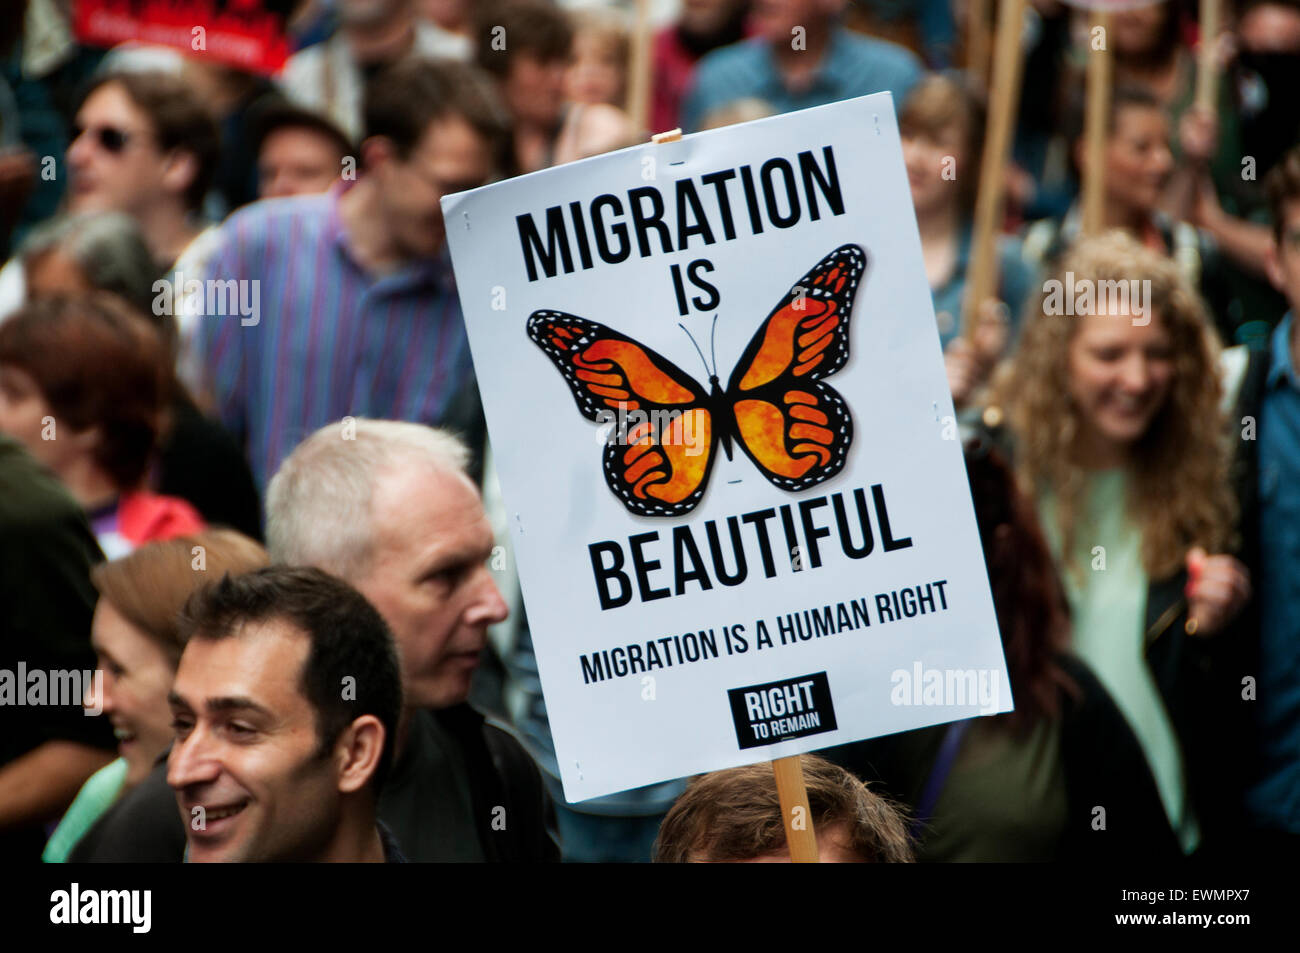 March against austerity, London June 20th 2015. A protester holds a placard saying 'Migration is beautiful'. - Stock Image